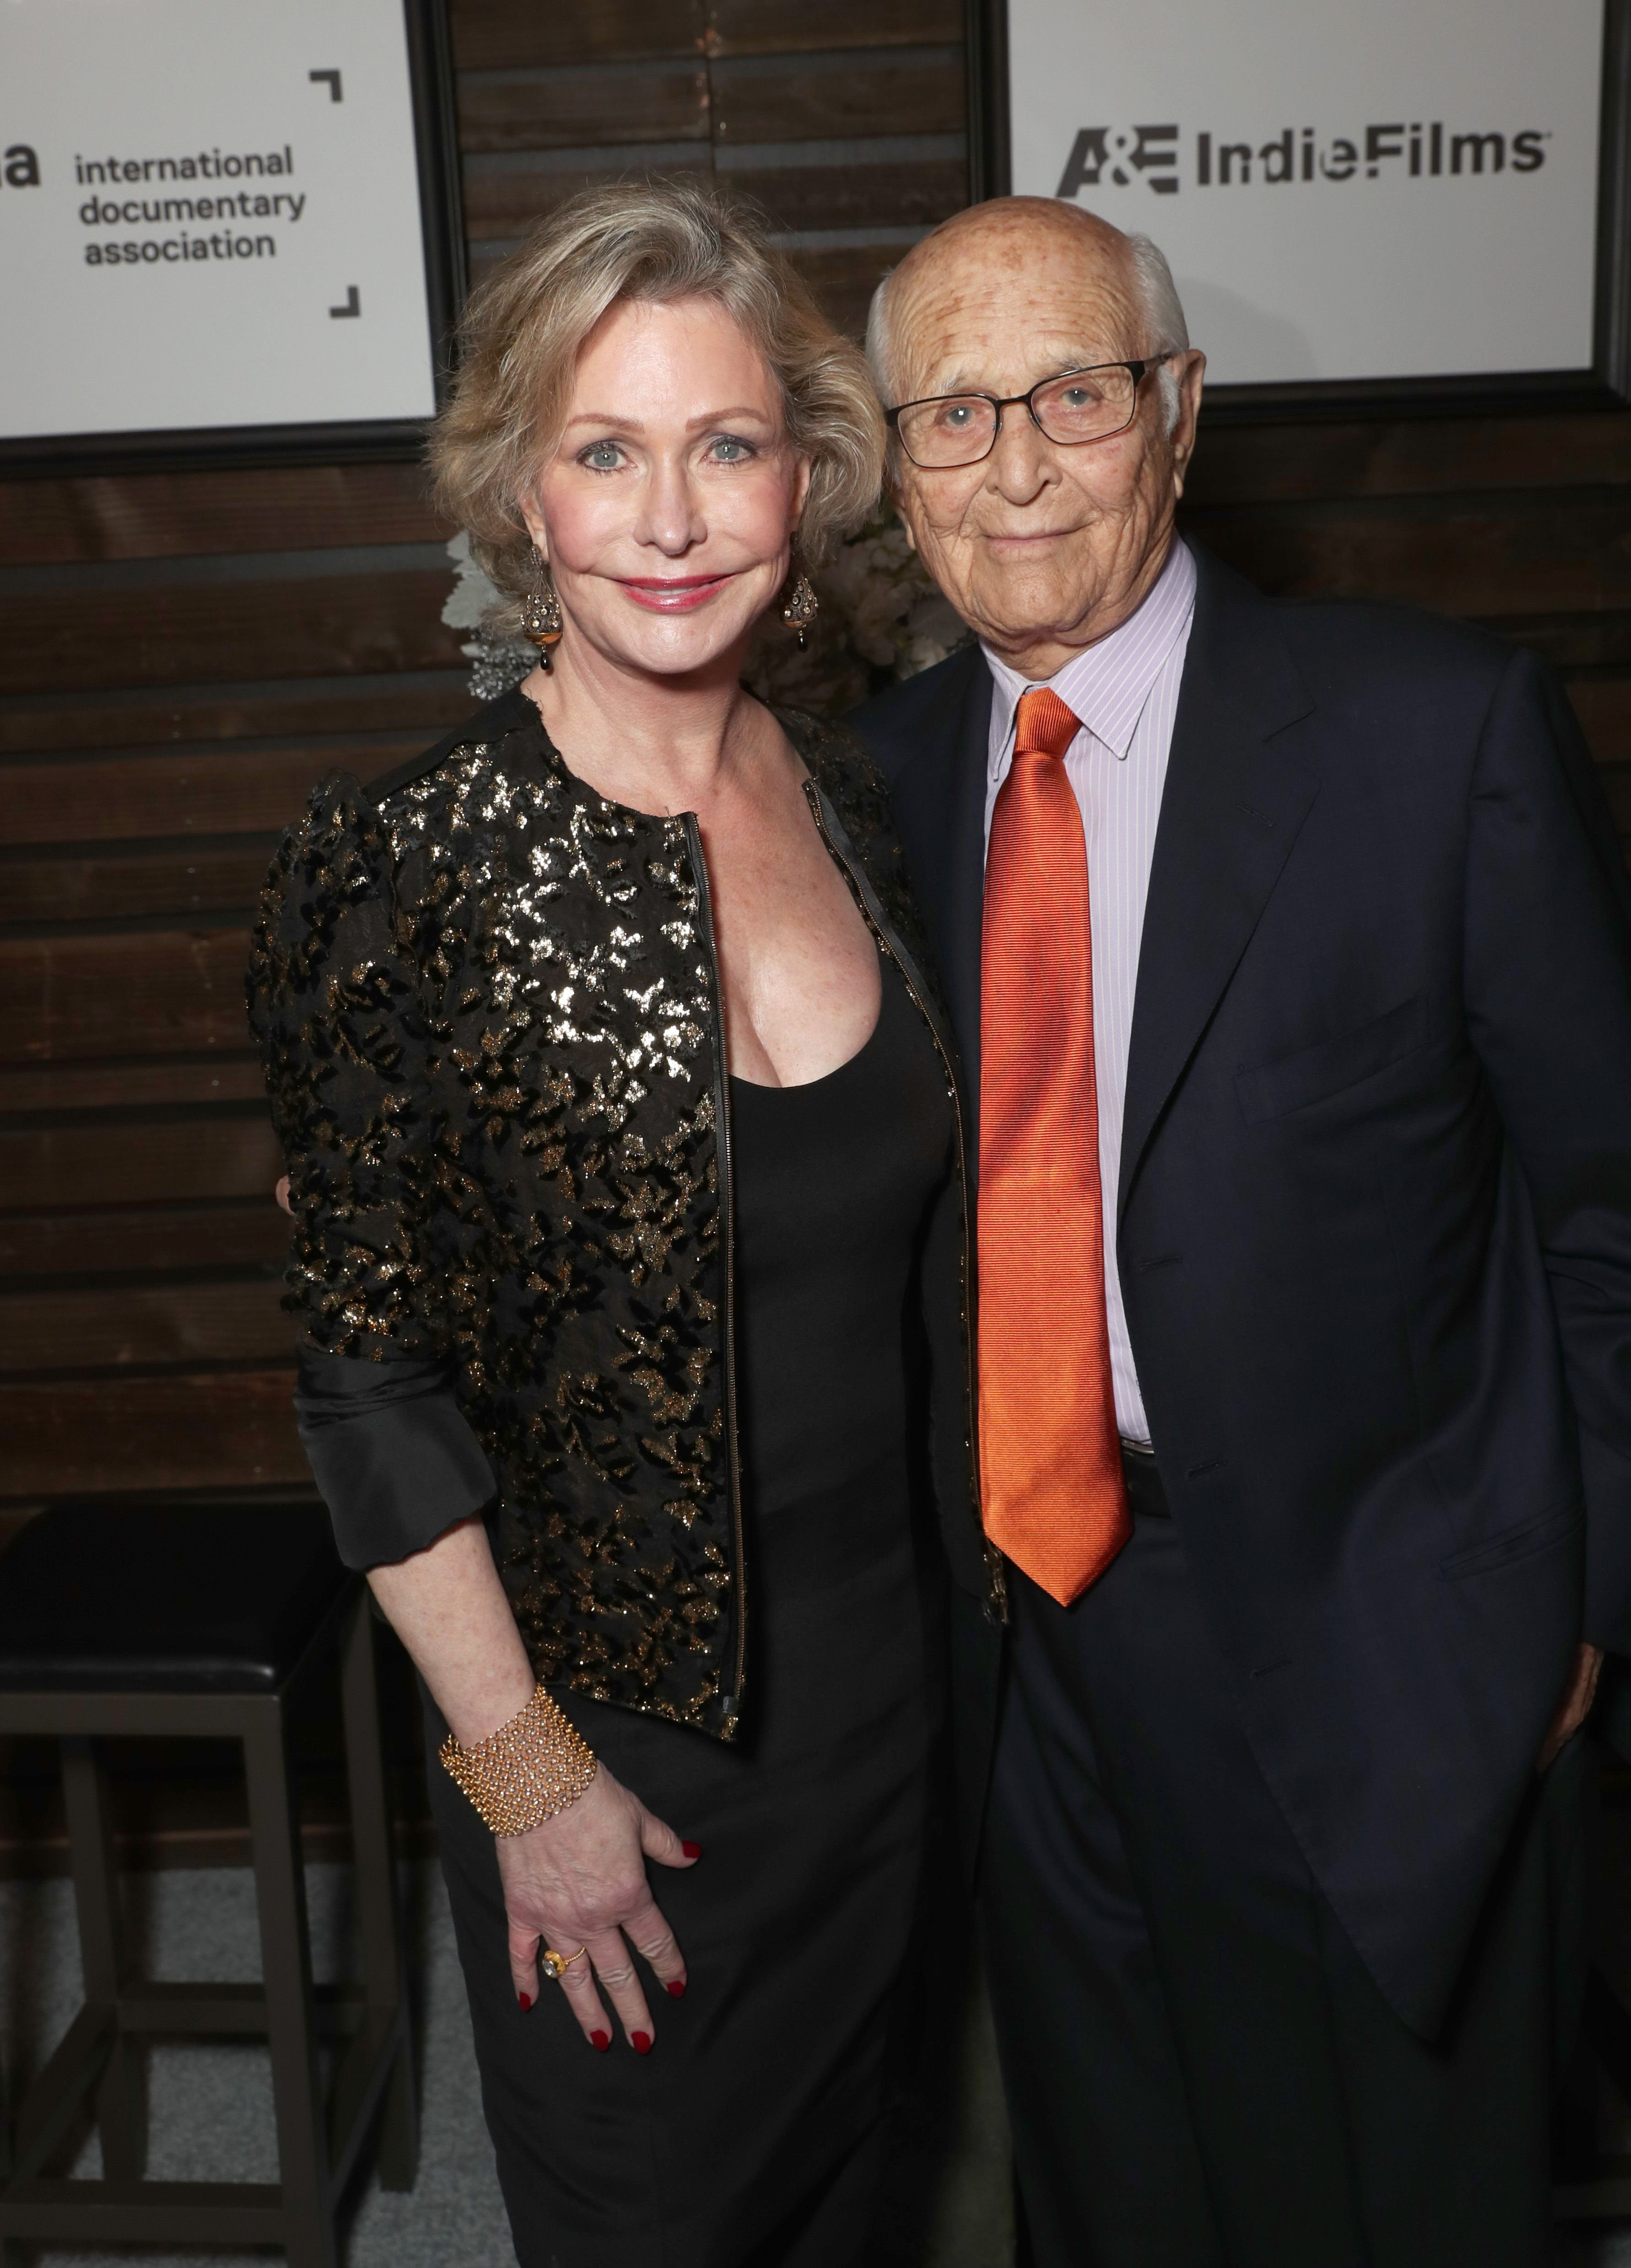 Lyn and Norman Lear at the 32nd Annual IDA Documentary Awards on December 9, 2016, in Hollywood, California | Photo: Todd Williamson/Getty Images